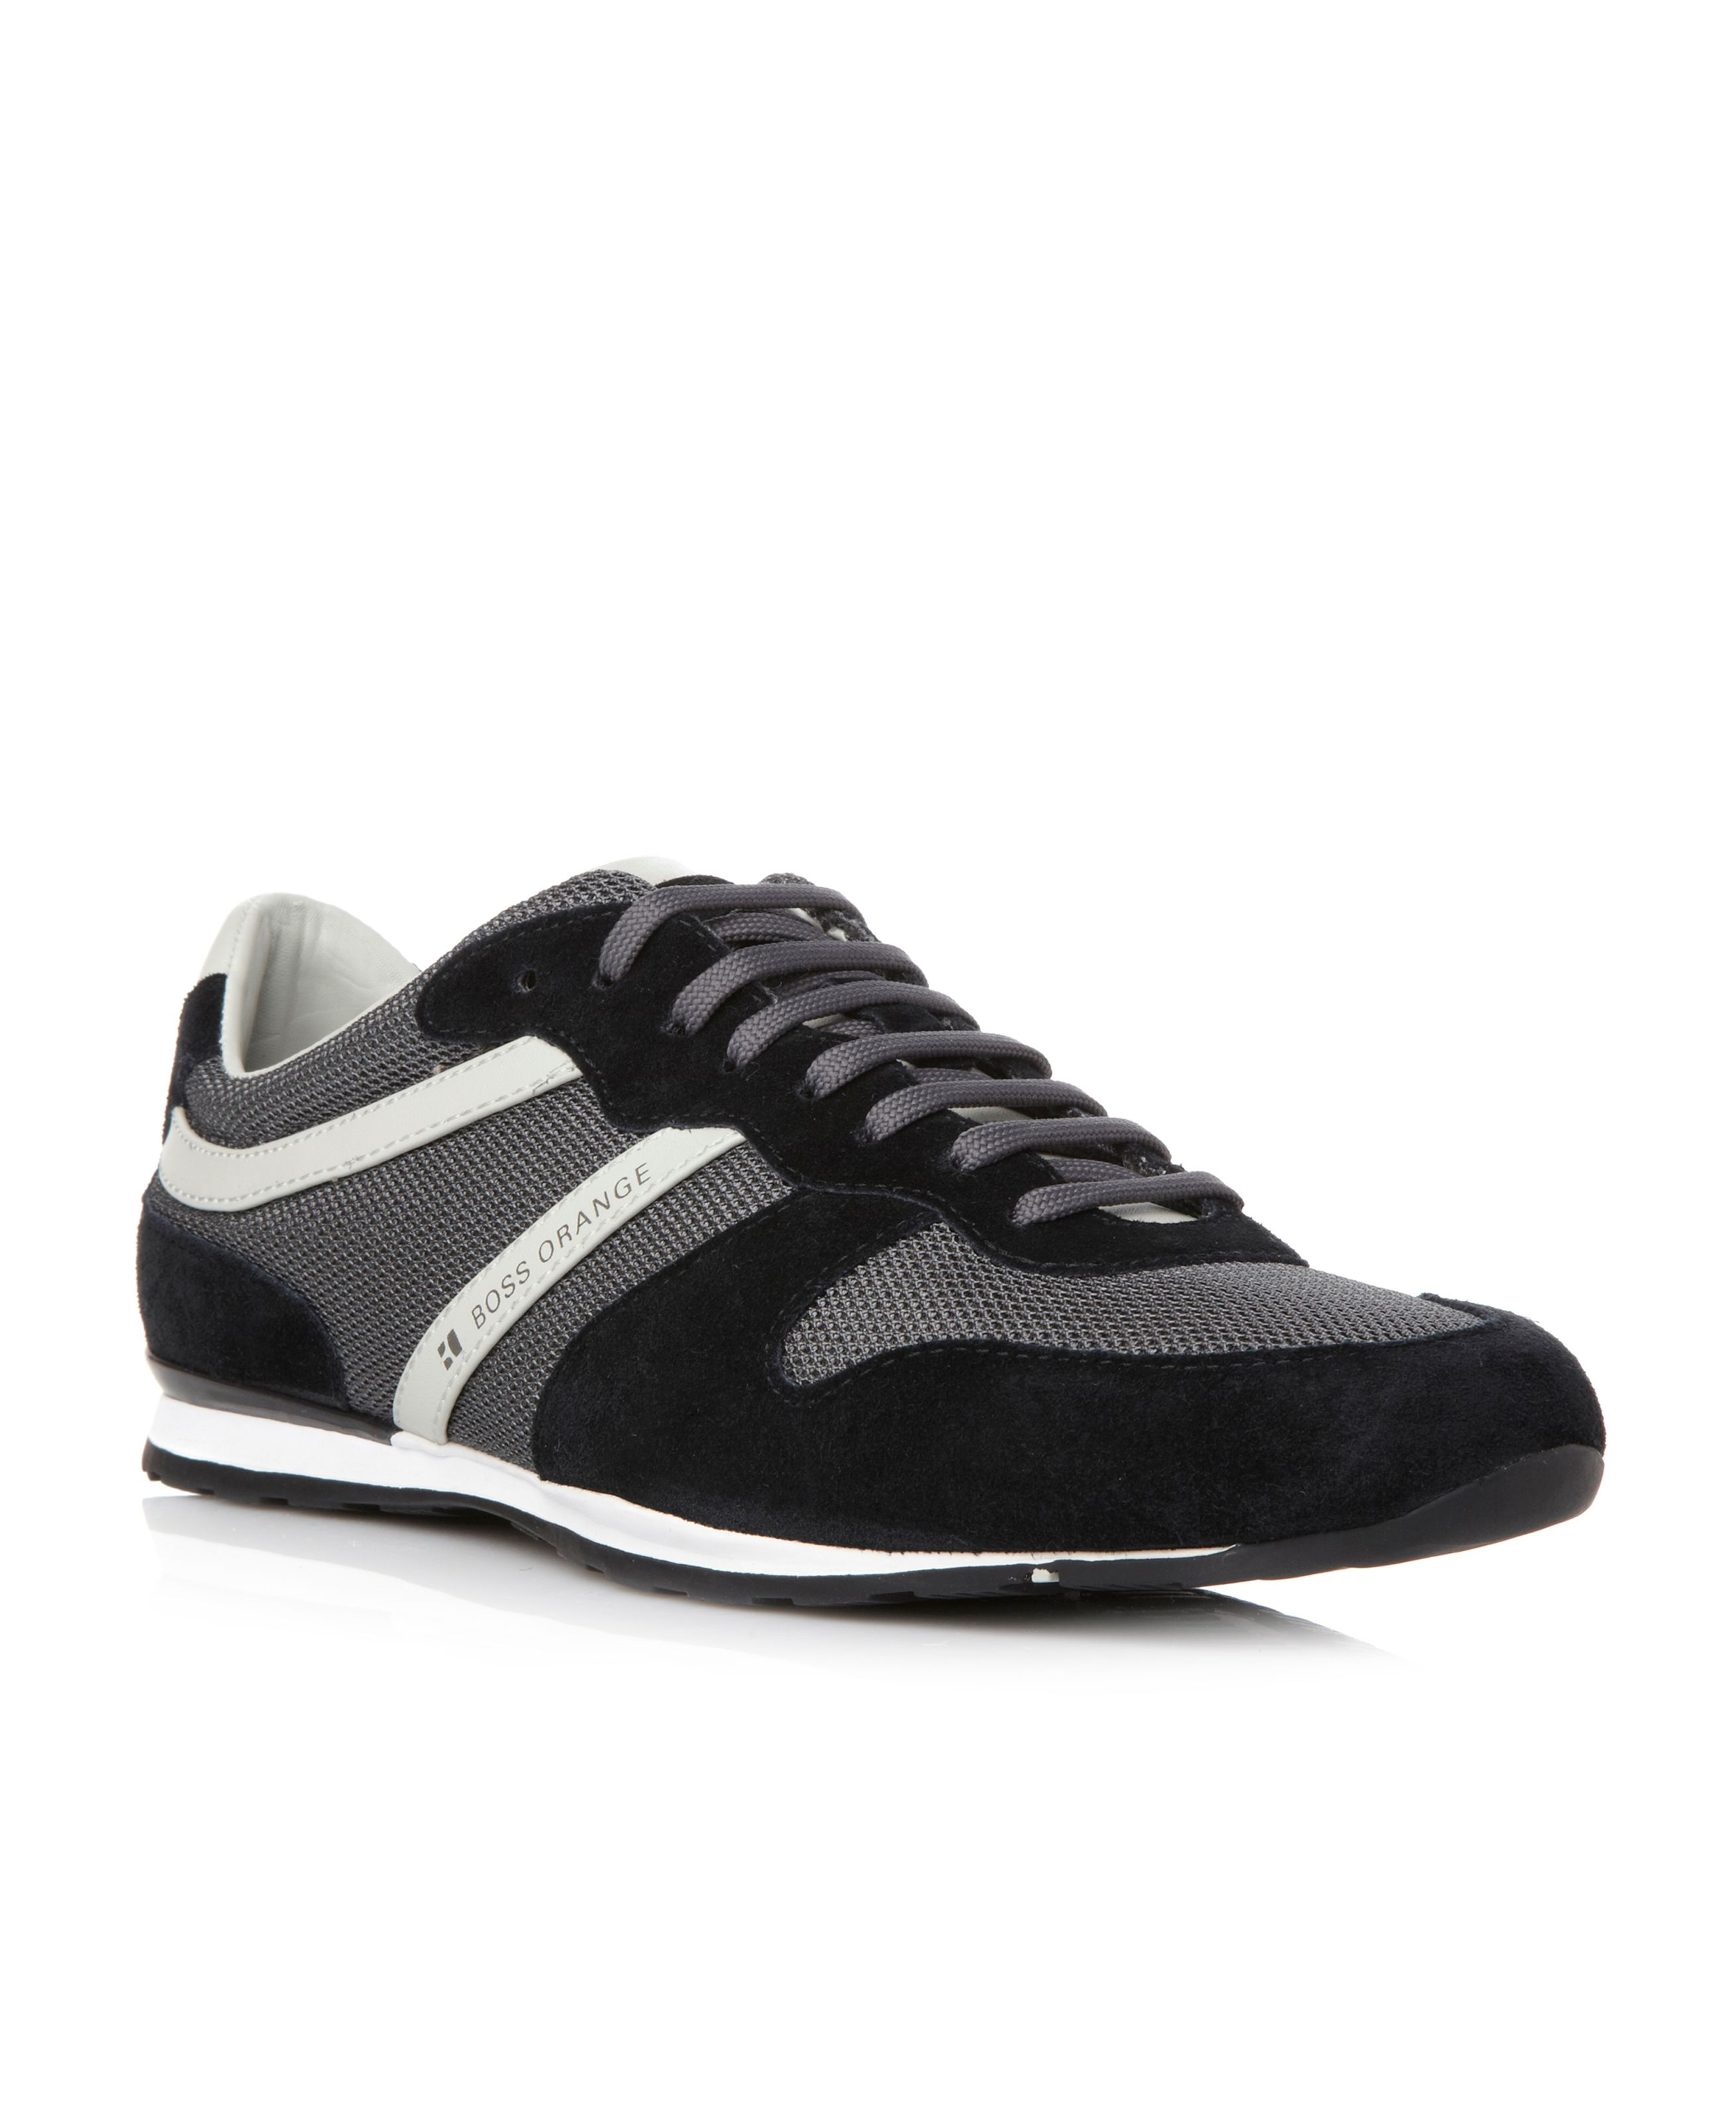 Orlet combo side stripe runner trainers